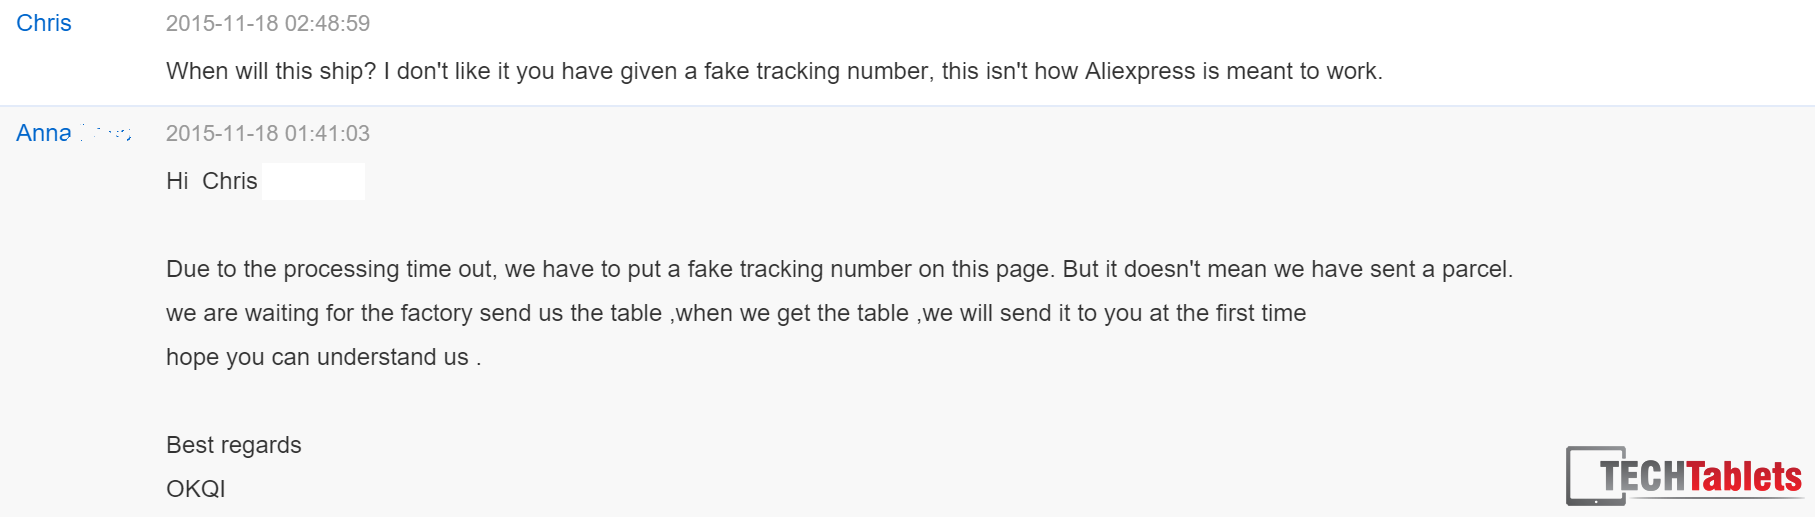 AliExpress Sellers - Fake Tracking Numbers And Lies